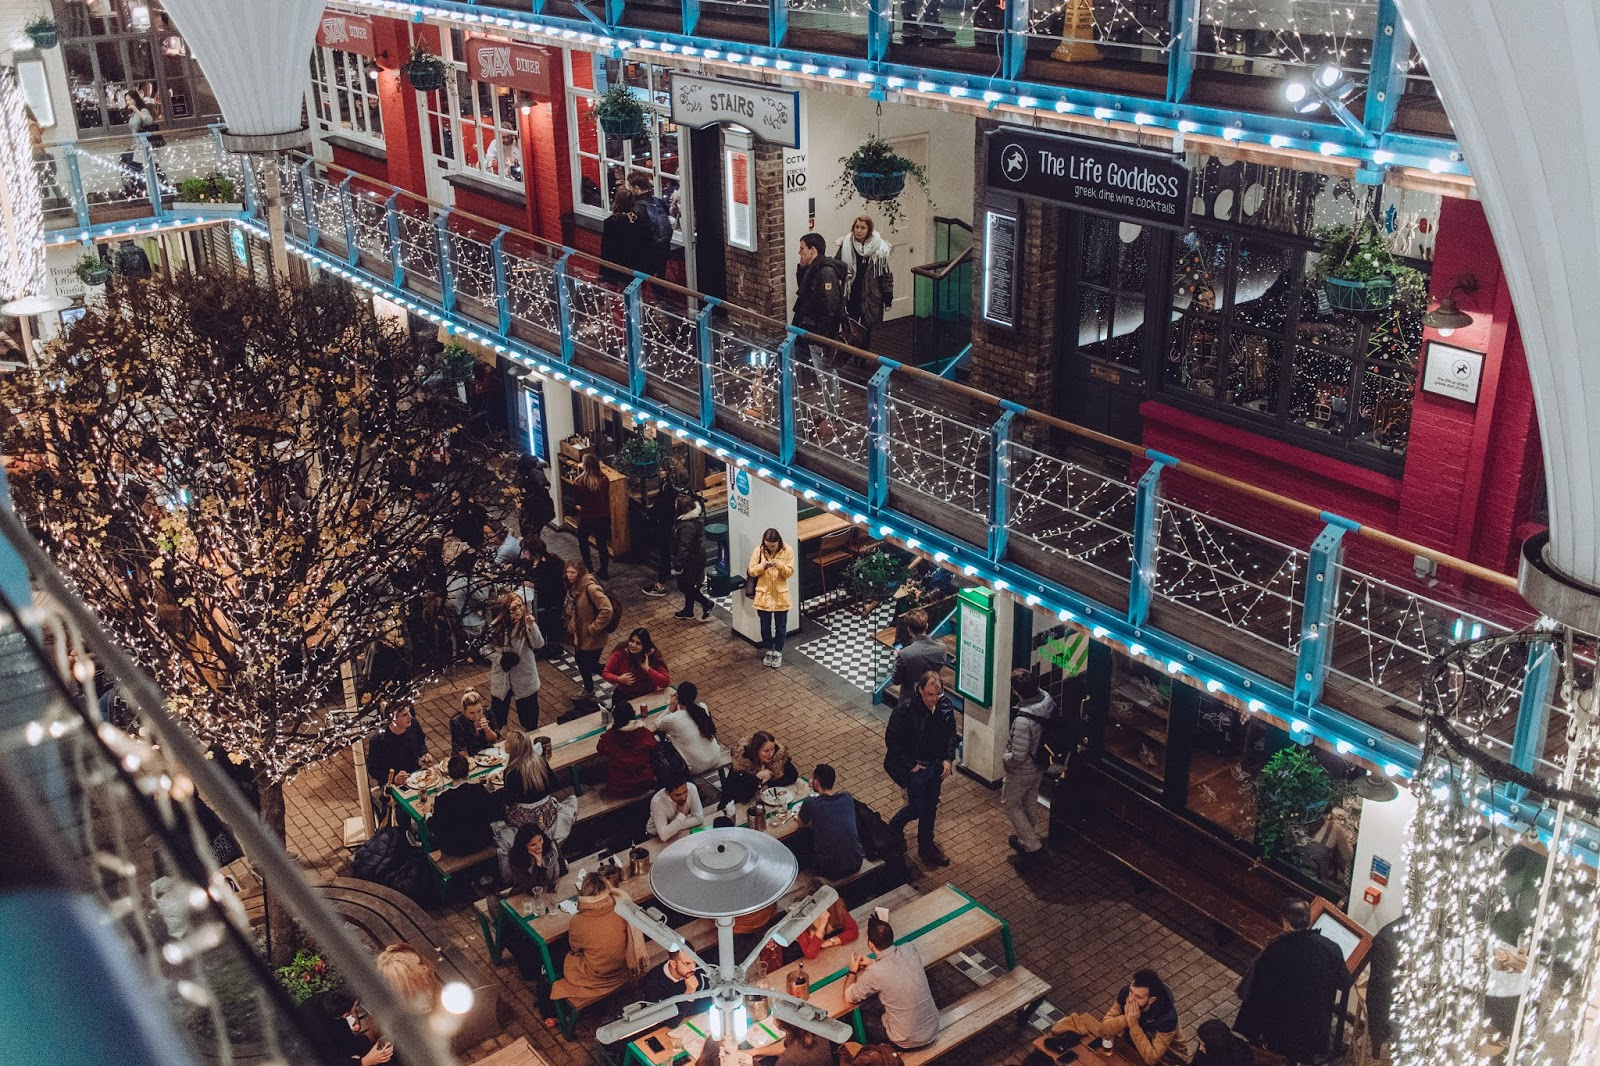 Kingly Court in Carnaby Street